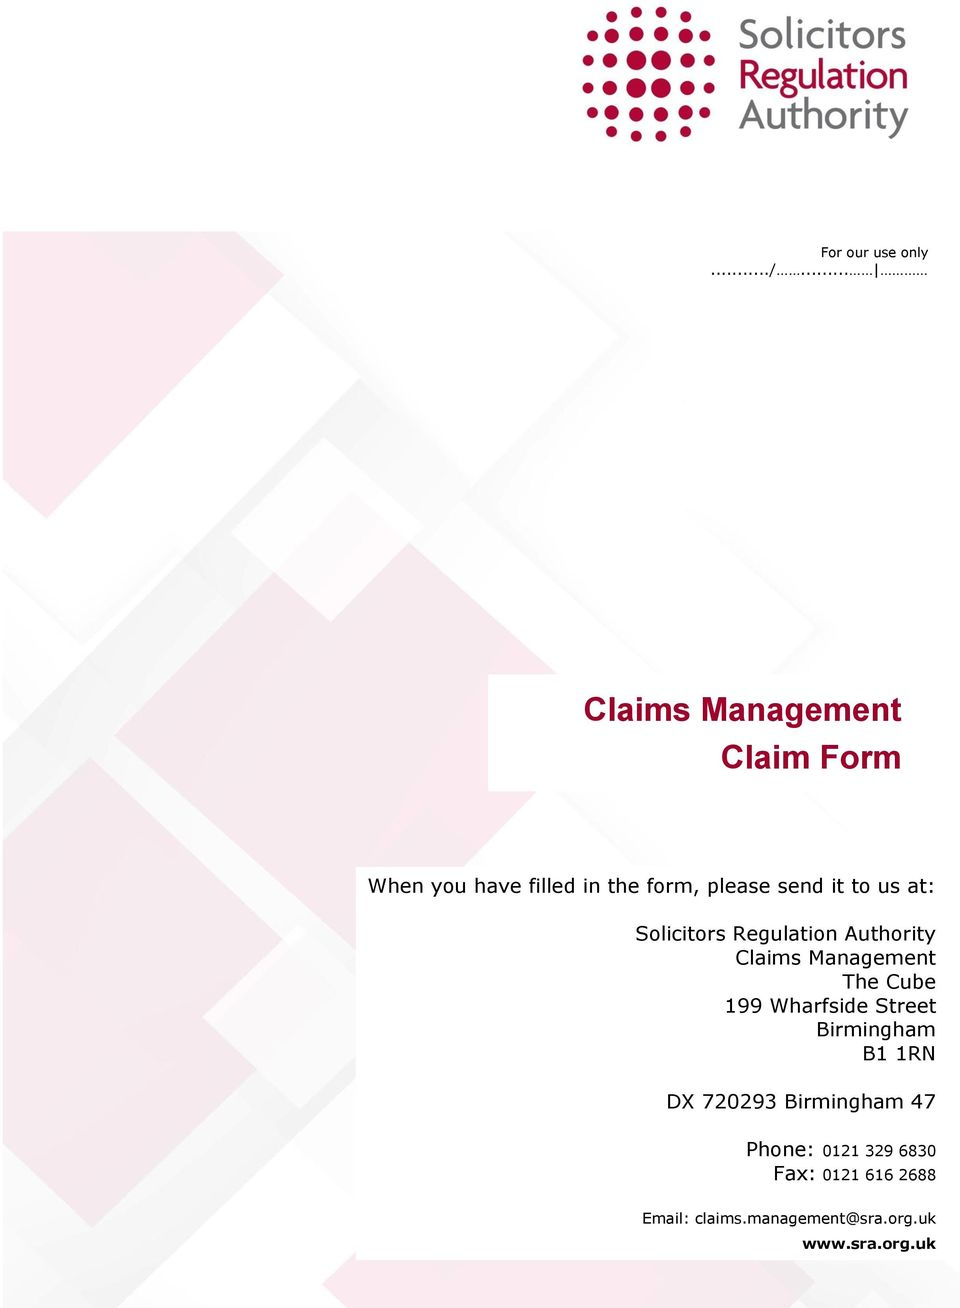 to us at: Solicitors Regulation Authority Claims Management The Cube 199